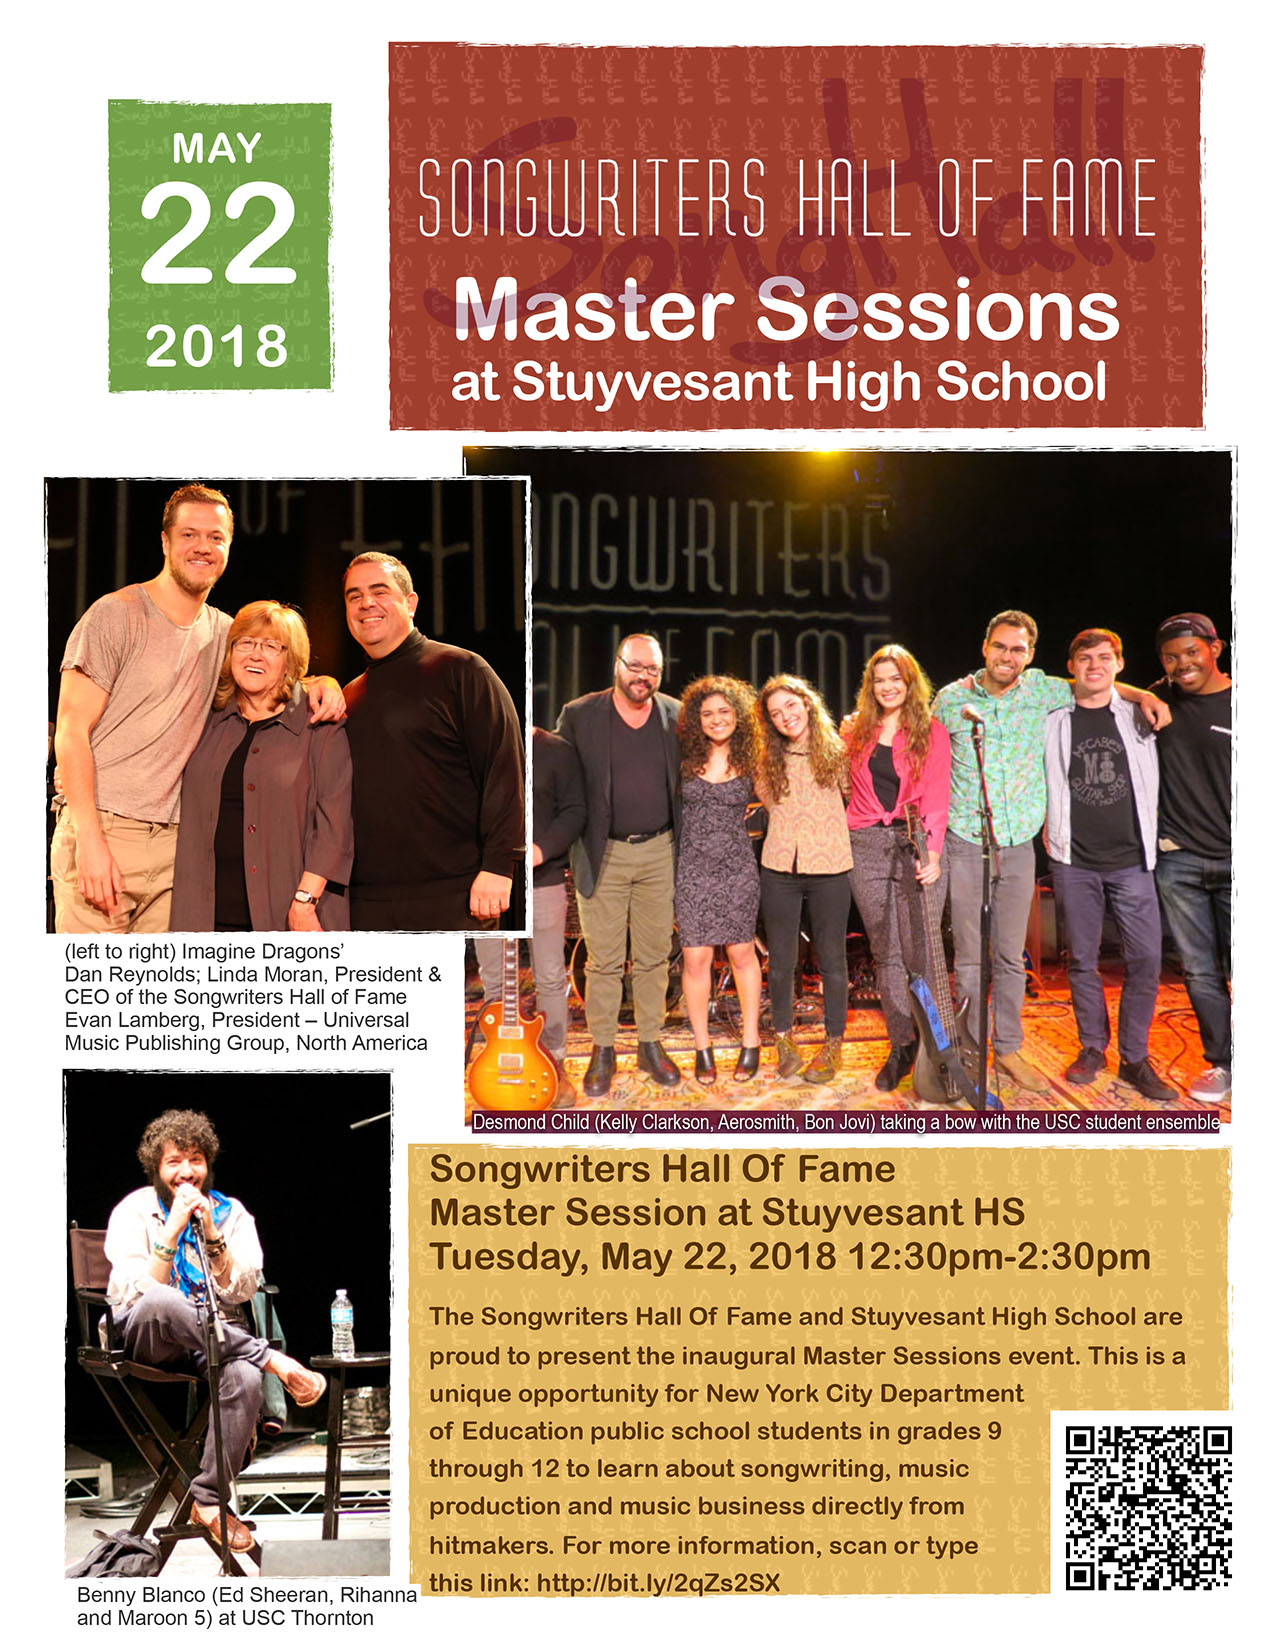 Songwriters Hall of Fame Master Sessions